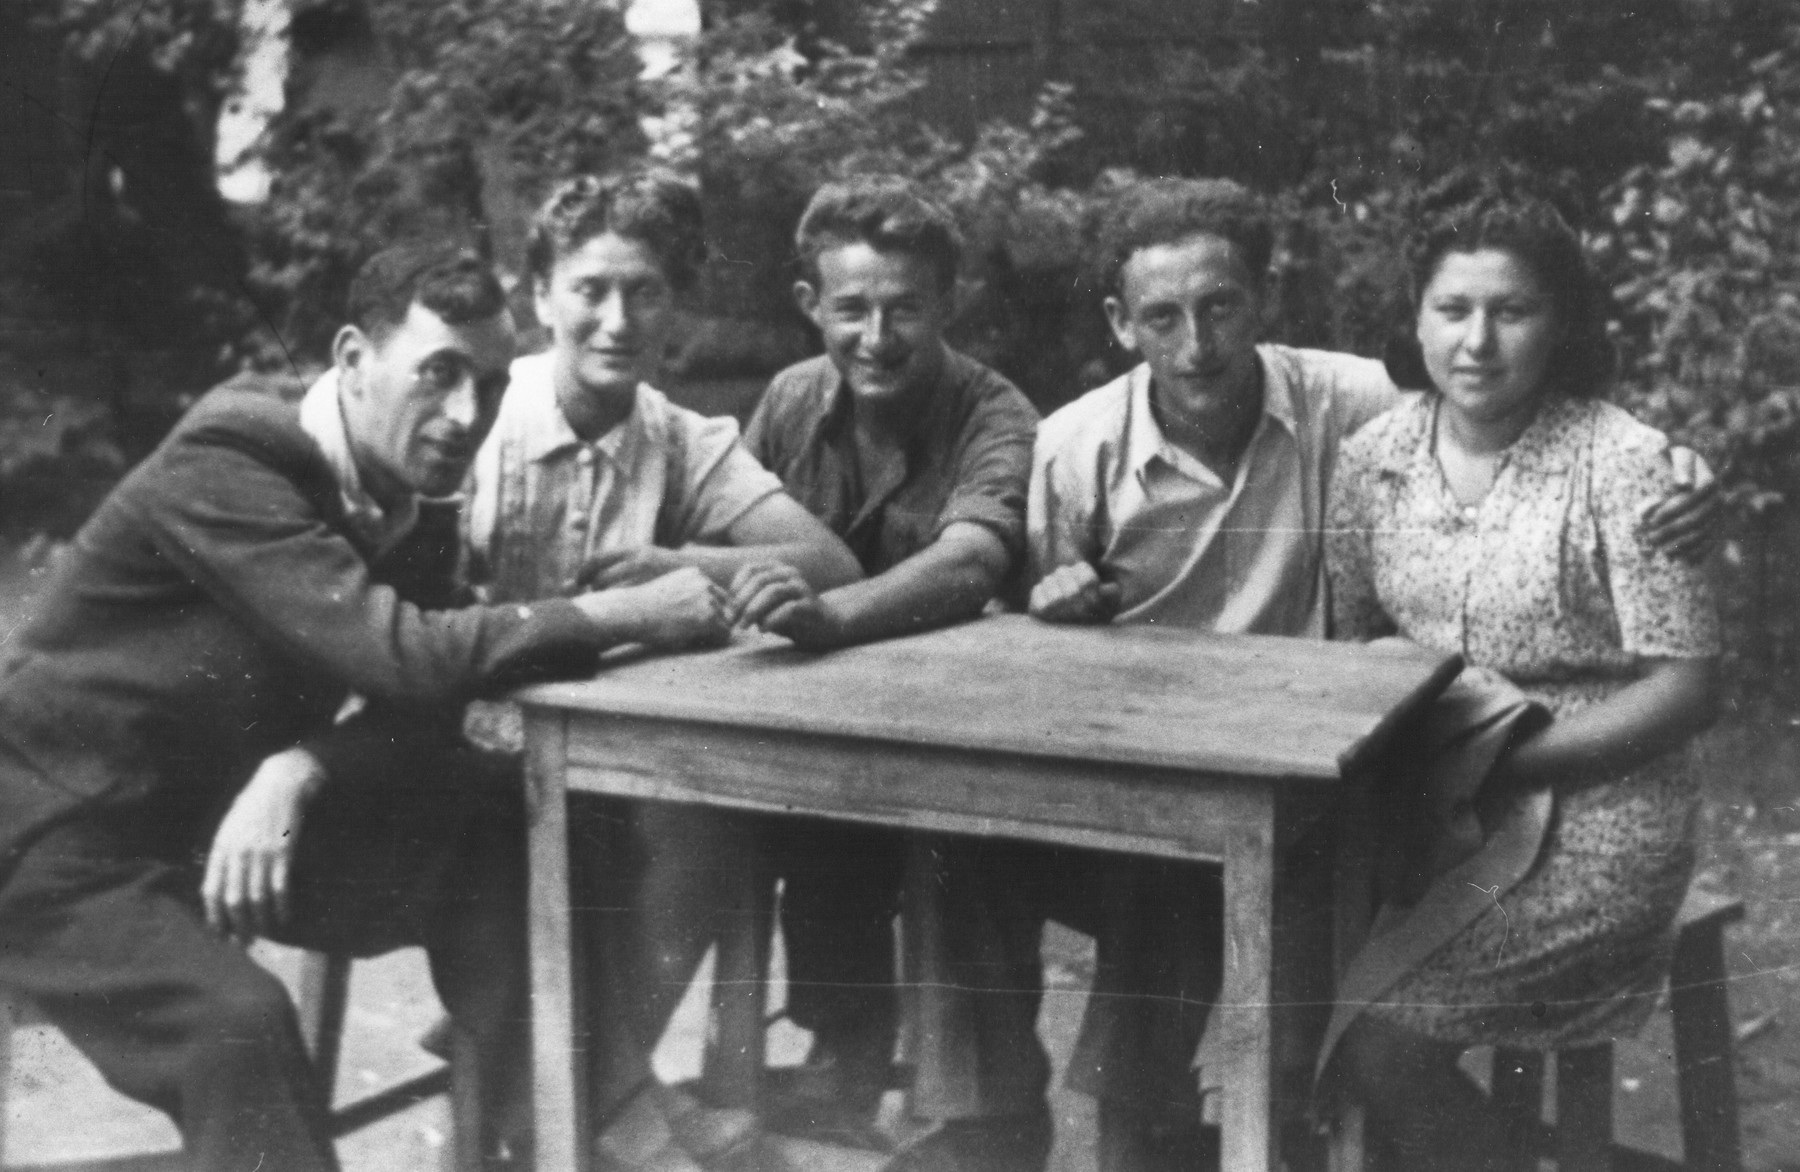 Members of the Nekama group gathered around a table during their stay in Bucharest.  Among those pictured are Baruch Goldstein (left) and Welvel Rabinovich (second from the right).